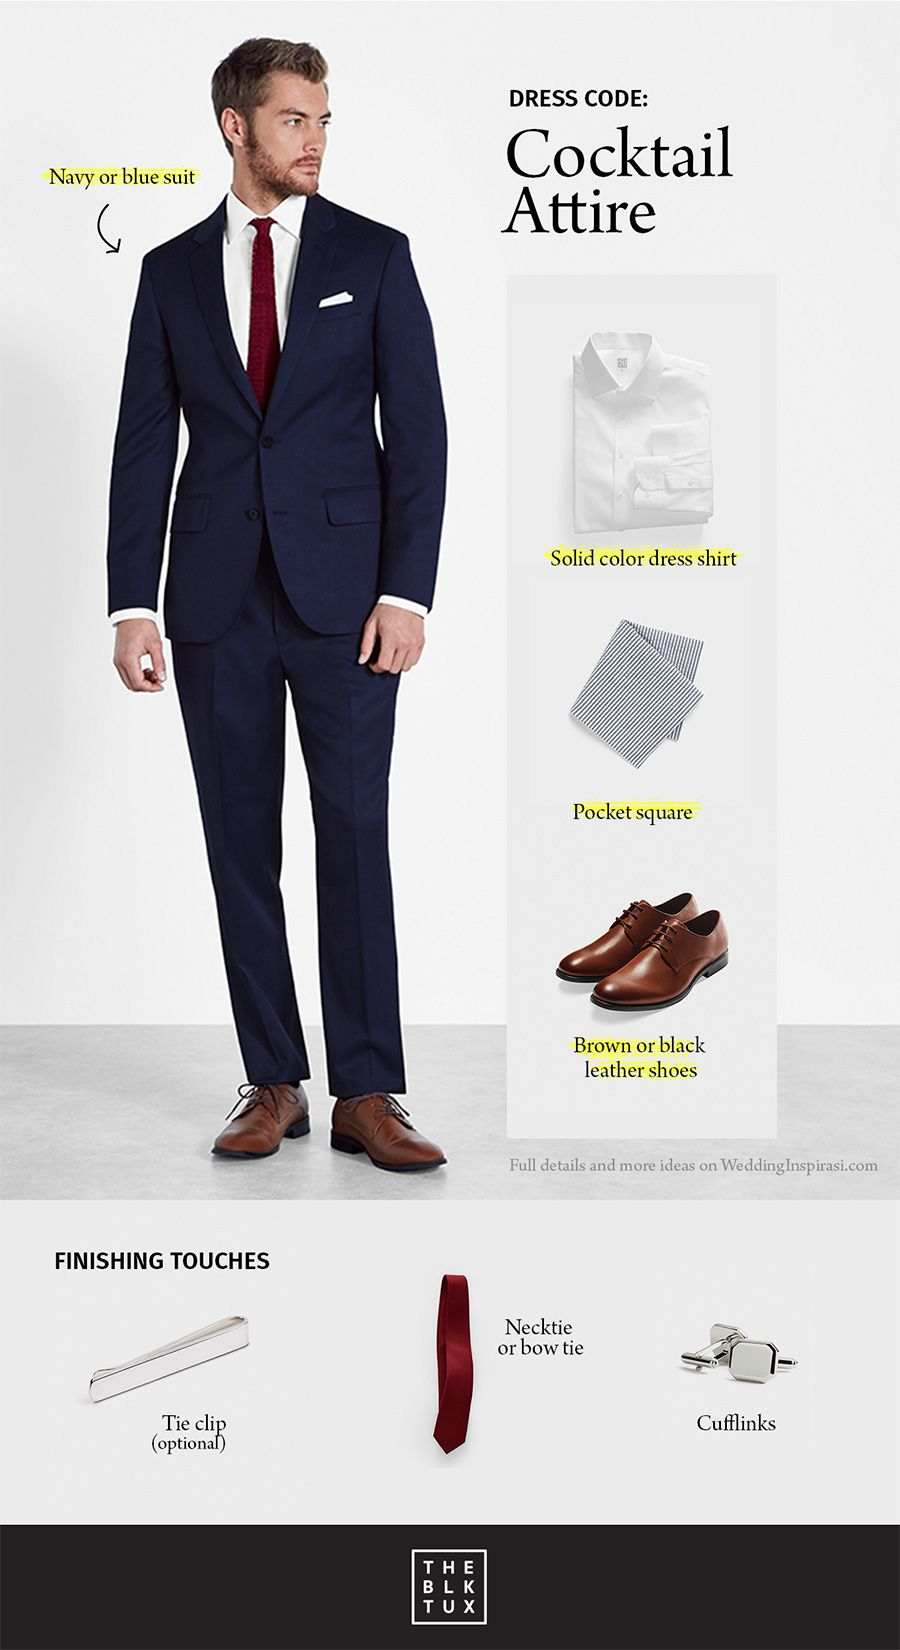 Decoding Dress Codes Get Smart With The Black Tux In 2019 Wedding